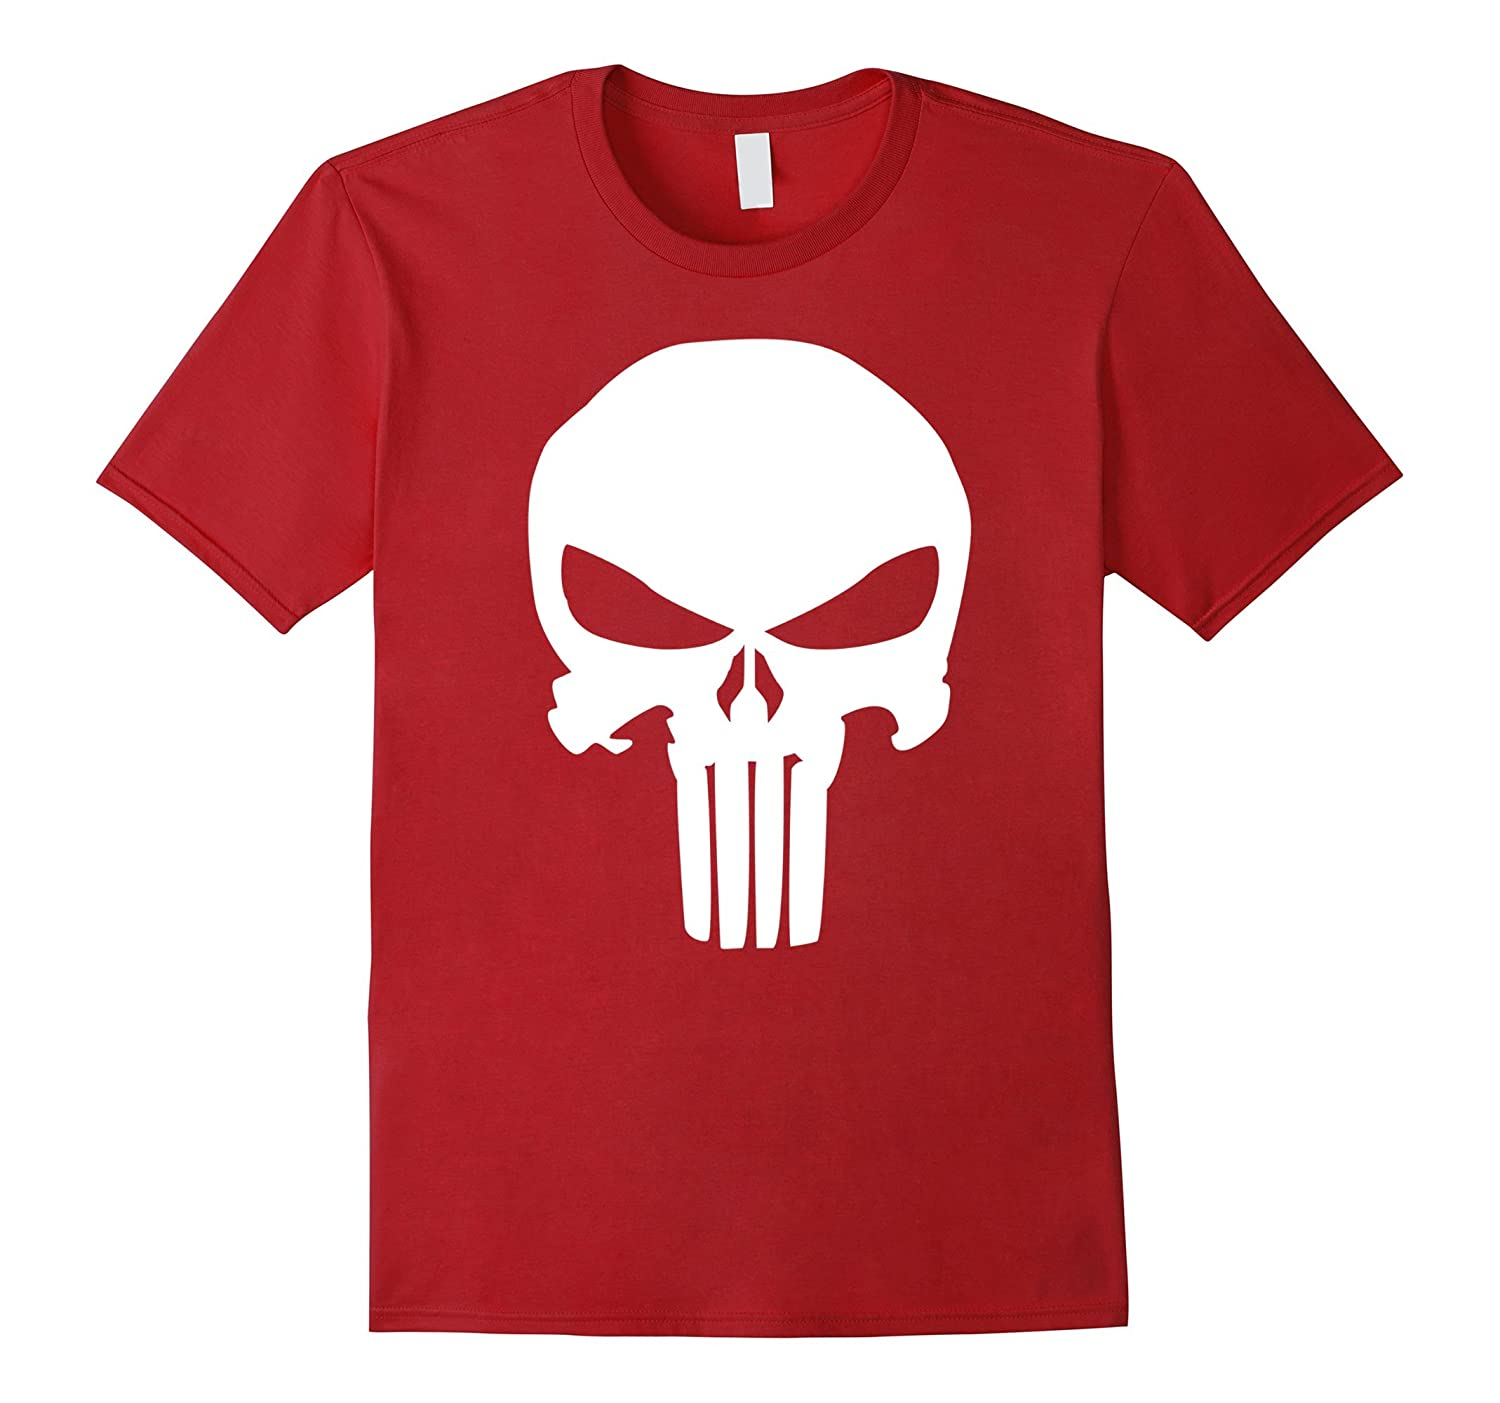 Punisher Classic Skull Symbol Graphic T-Shirt-RT